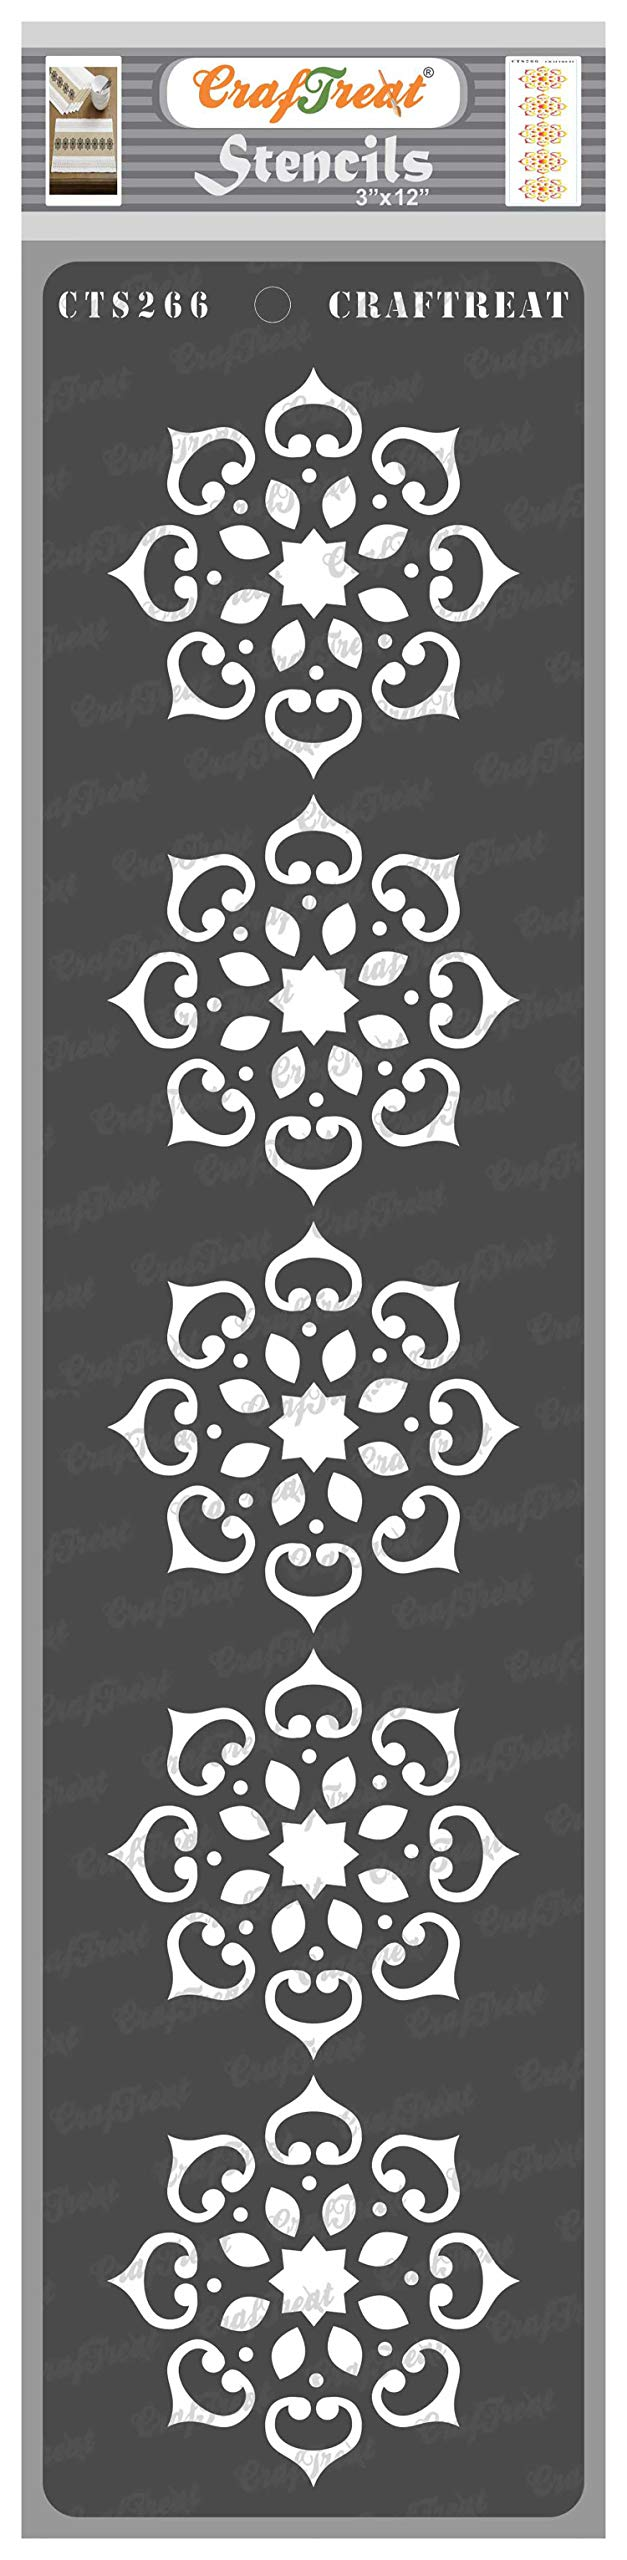 CrafTreat Border Stencils for Painting on Wood, Canvas, Paper, Fabric, Floor, Wall and Tile - Border10-3x12 Inches - Reusable DIY Art and Craft Stencil Borders for Painting - Rangoli Border Stencil